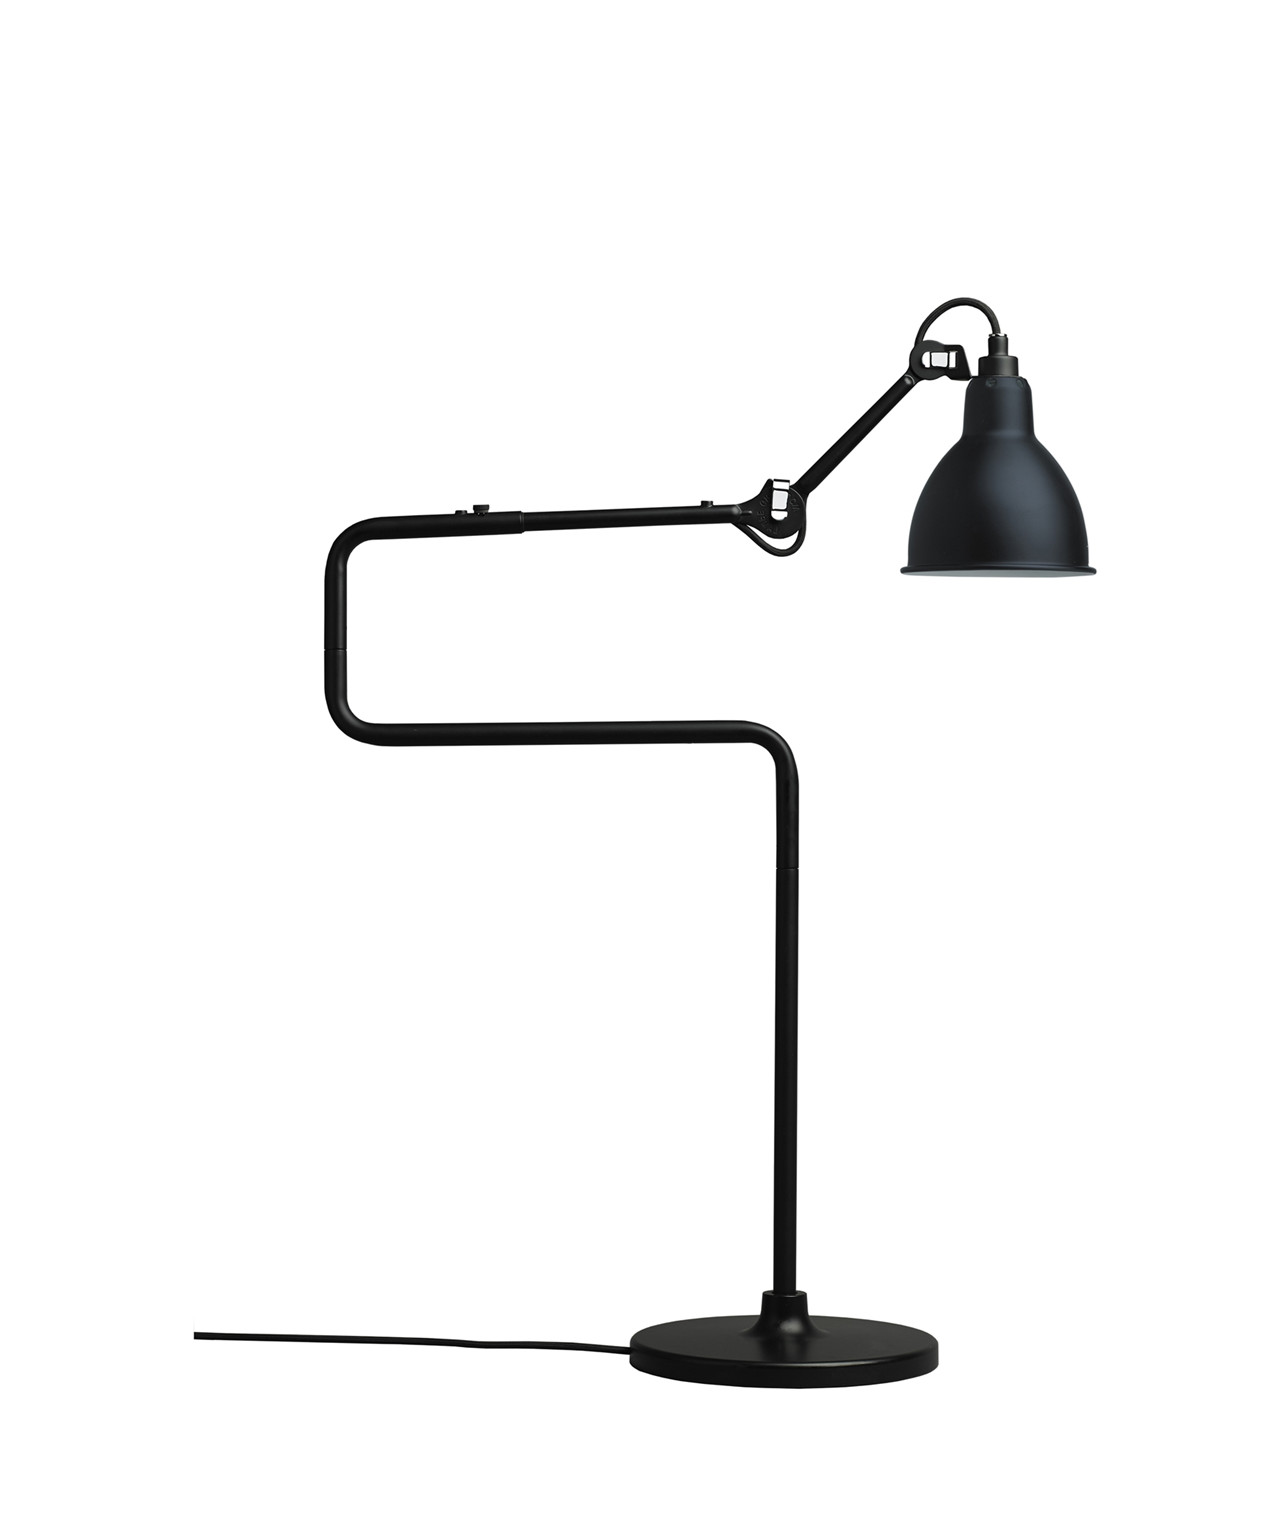 Image of   317 Bordlampe Sort - Lampe Gras